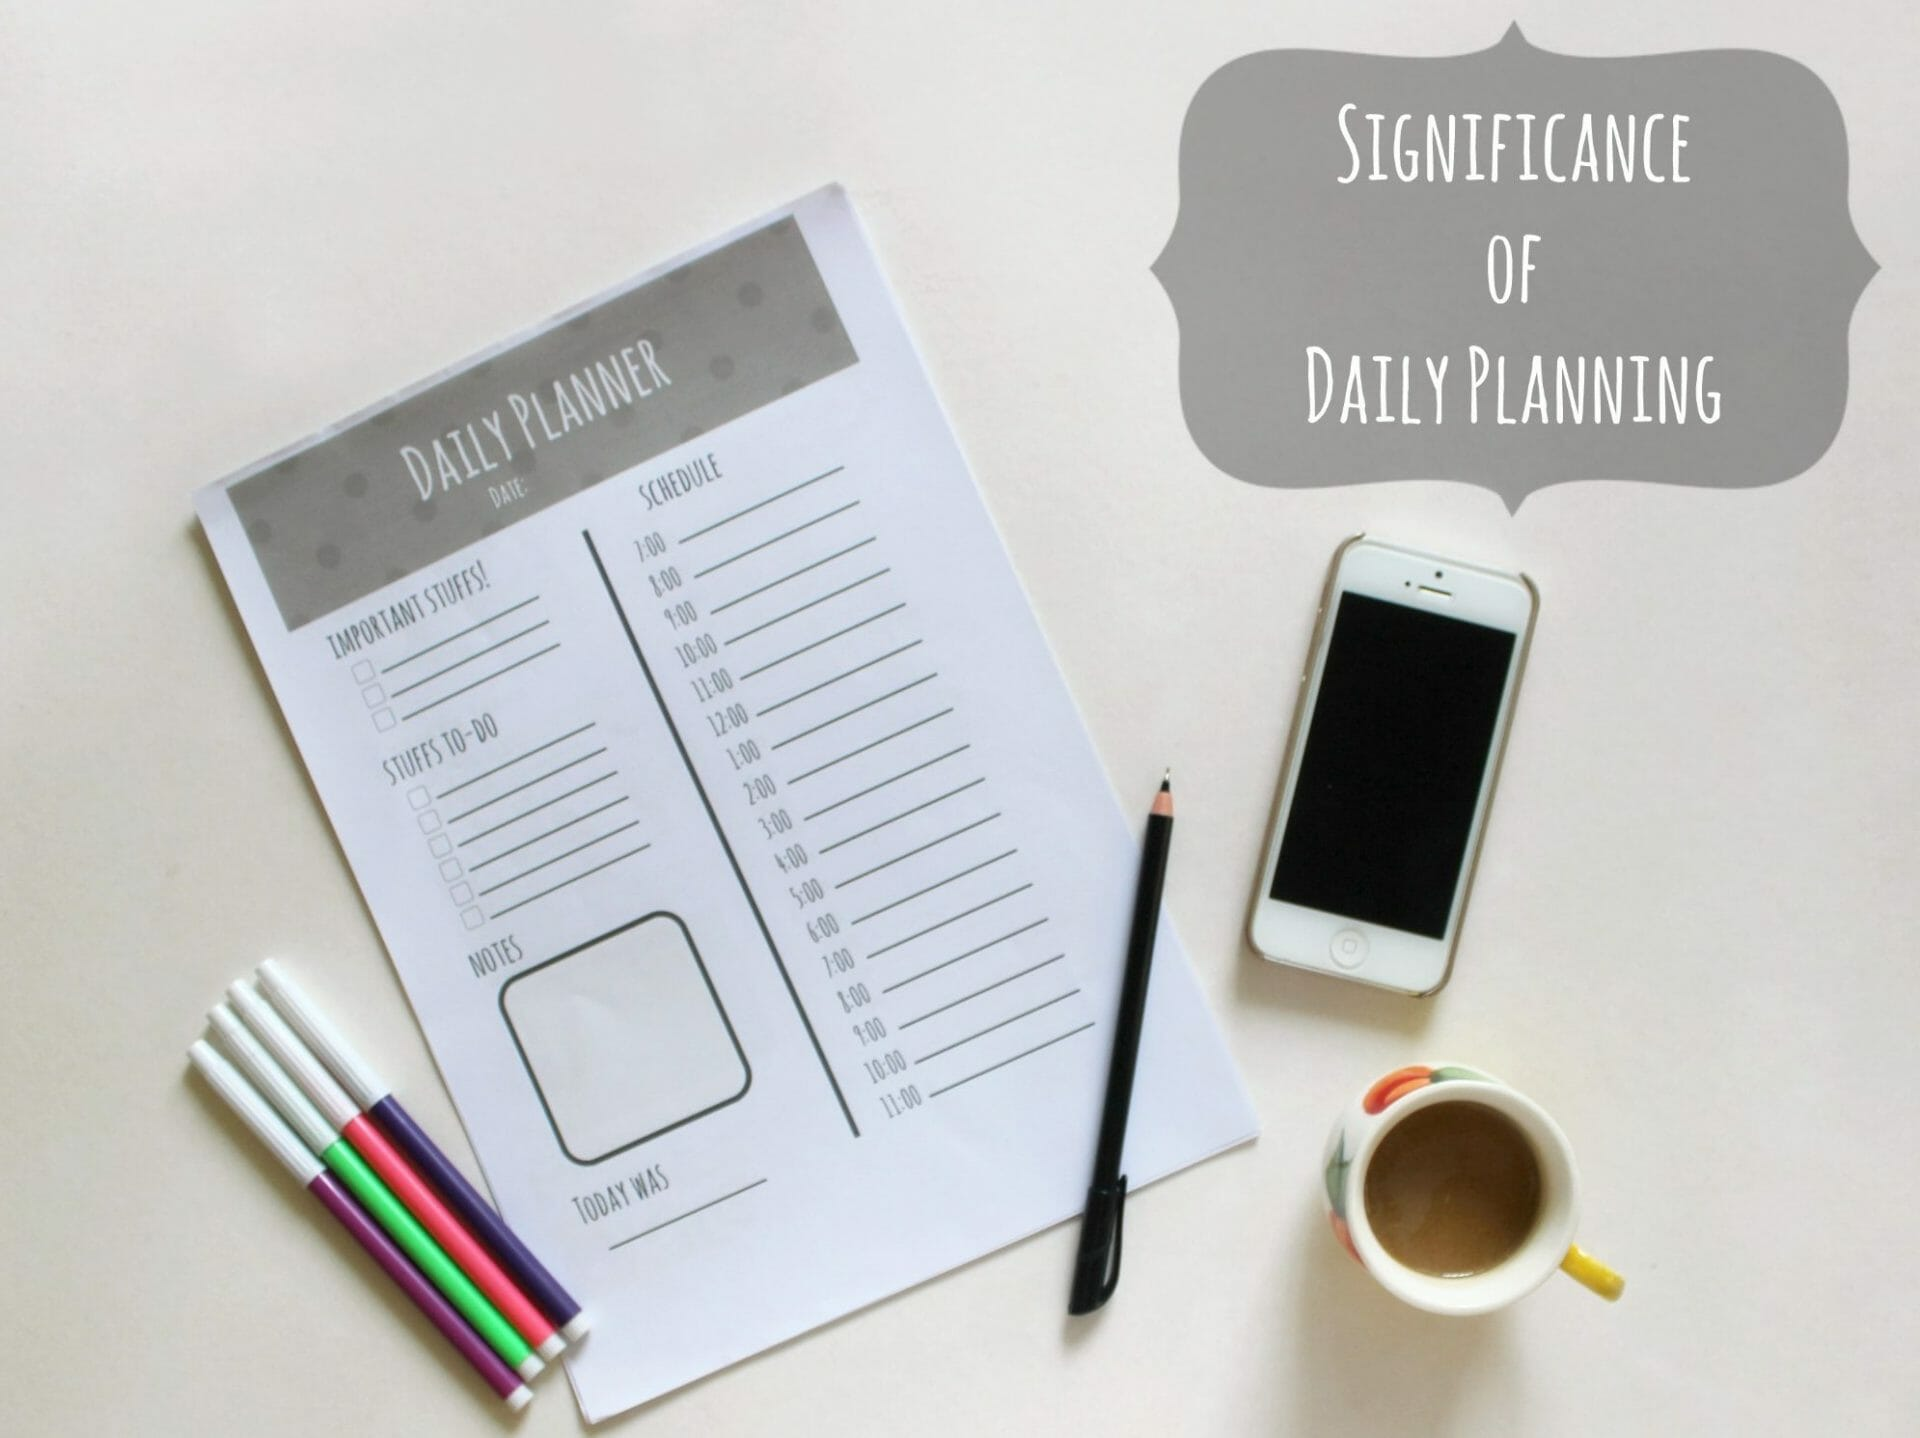 Significance of Daily Planning